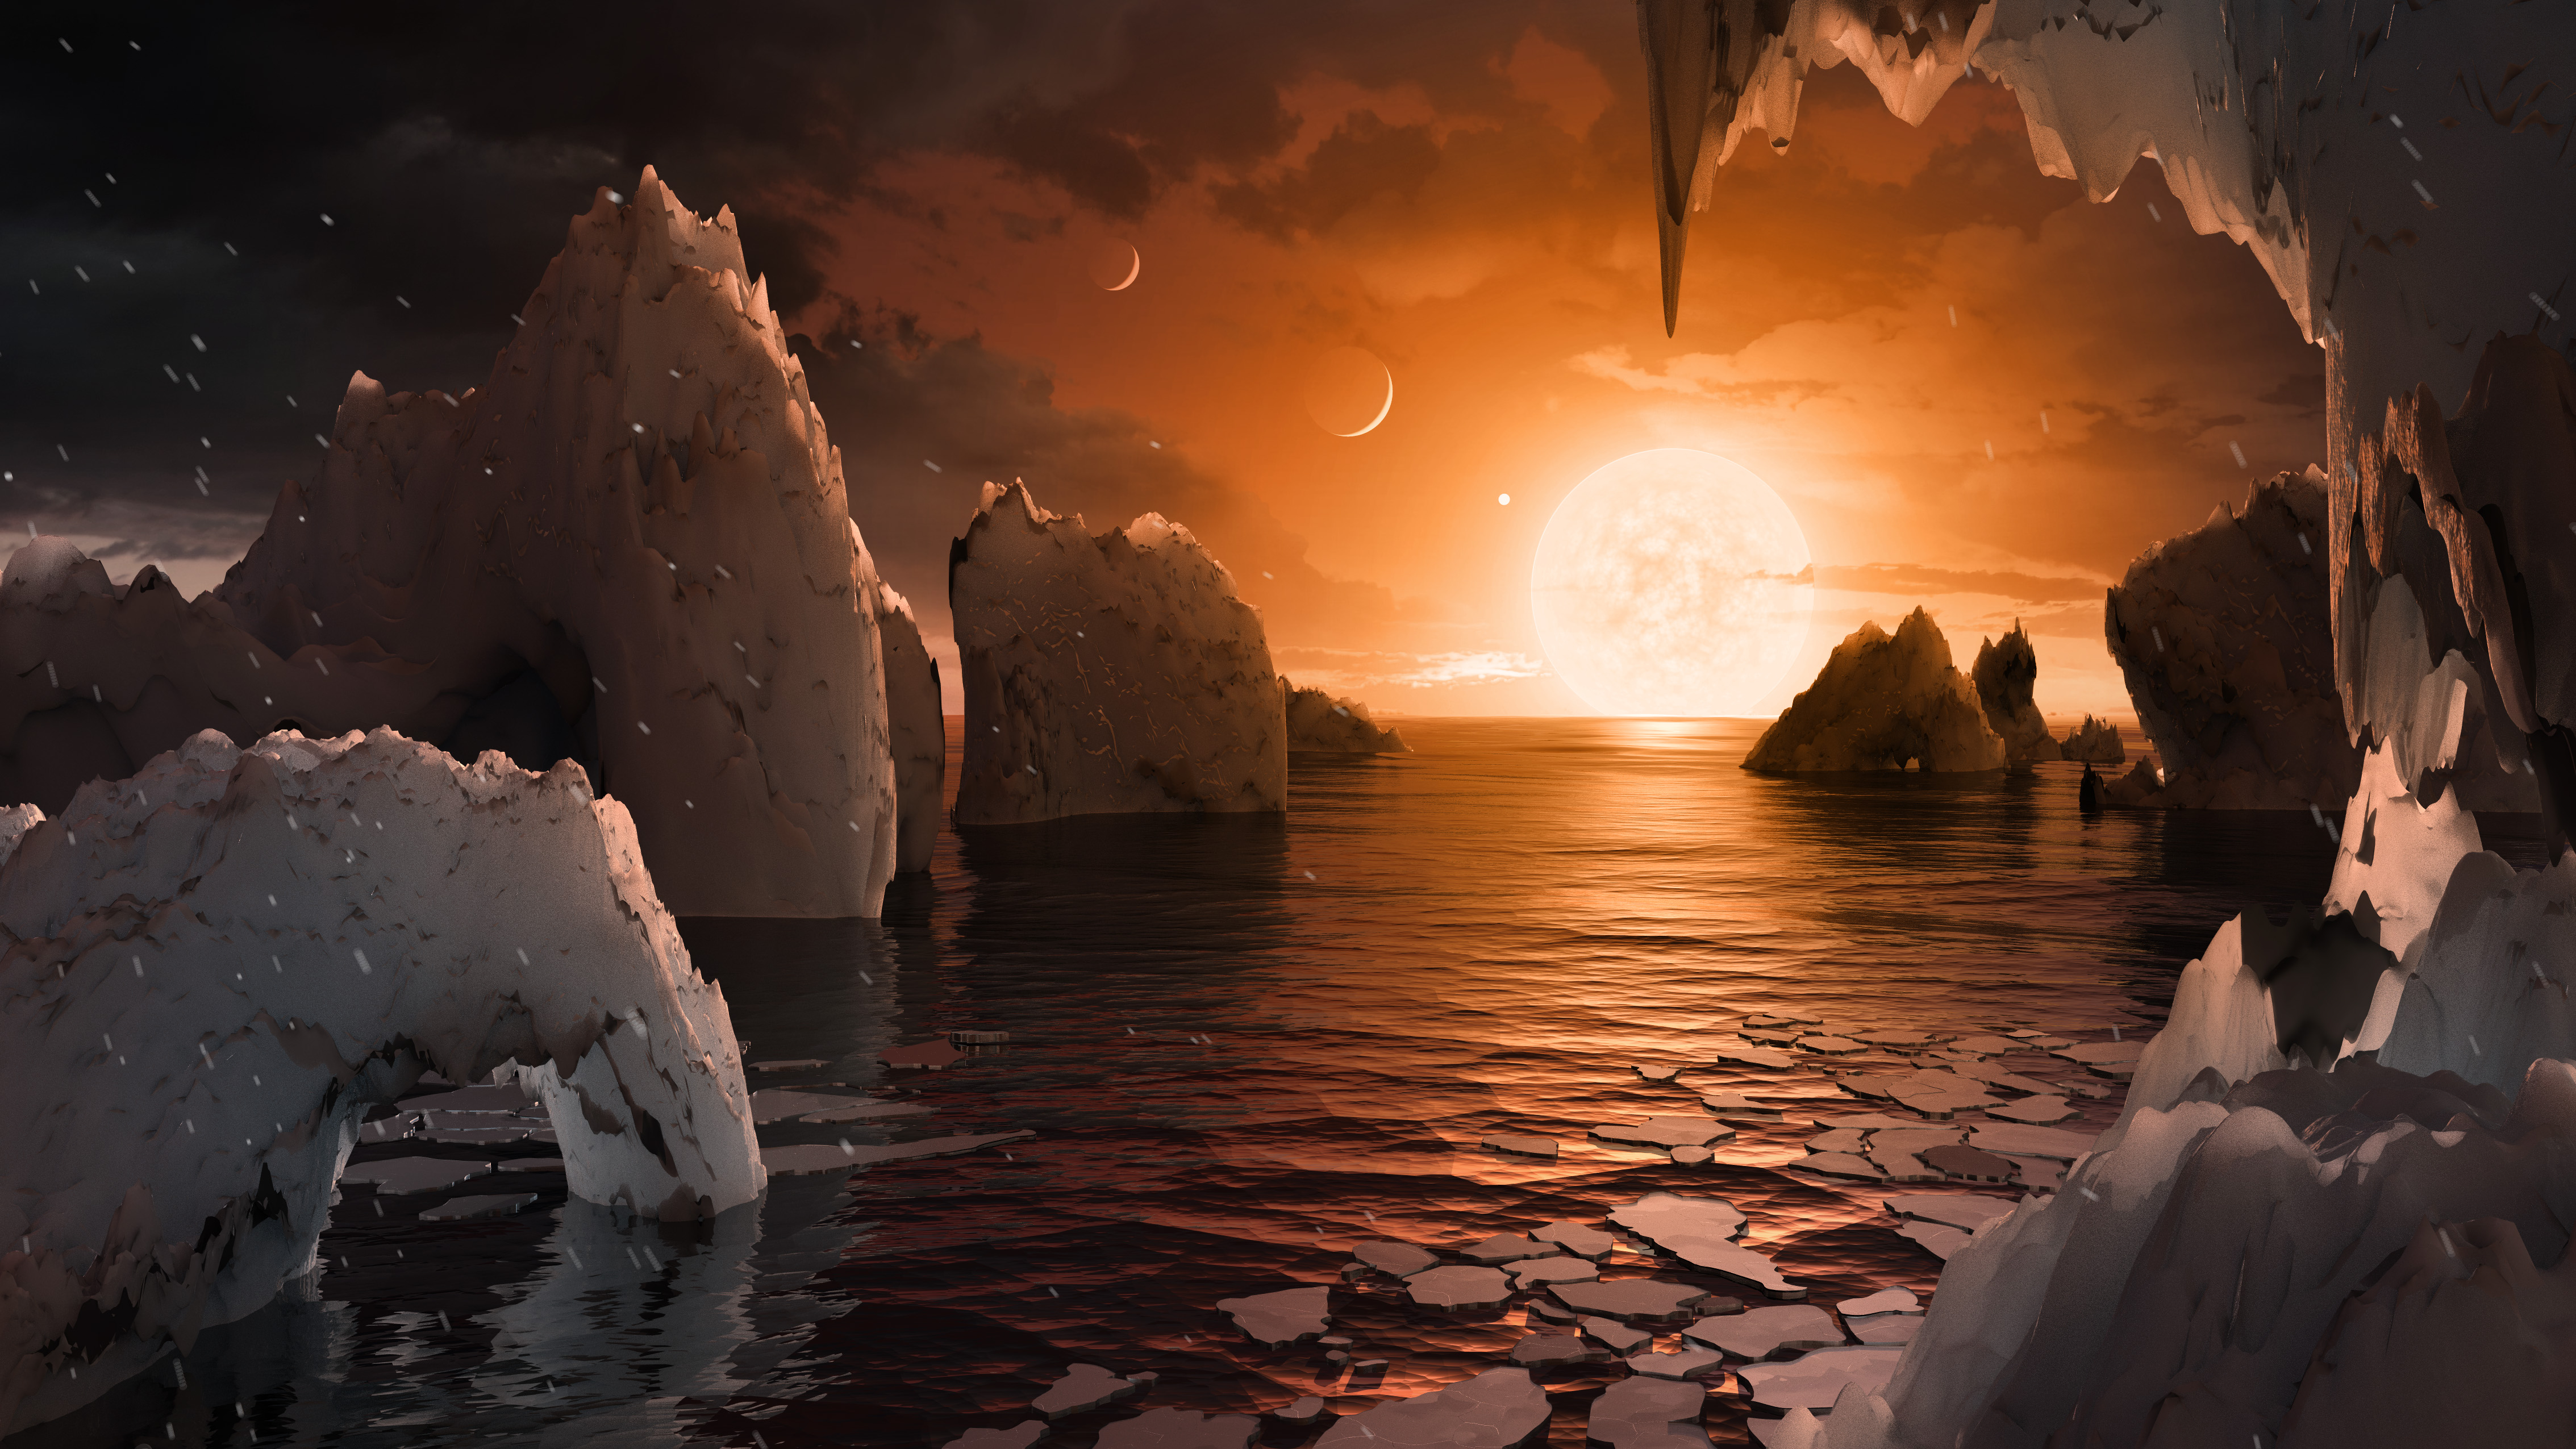 live look at planets - photo #49